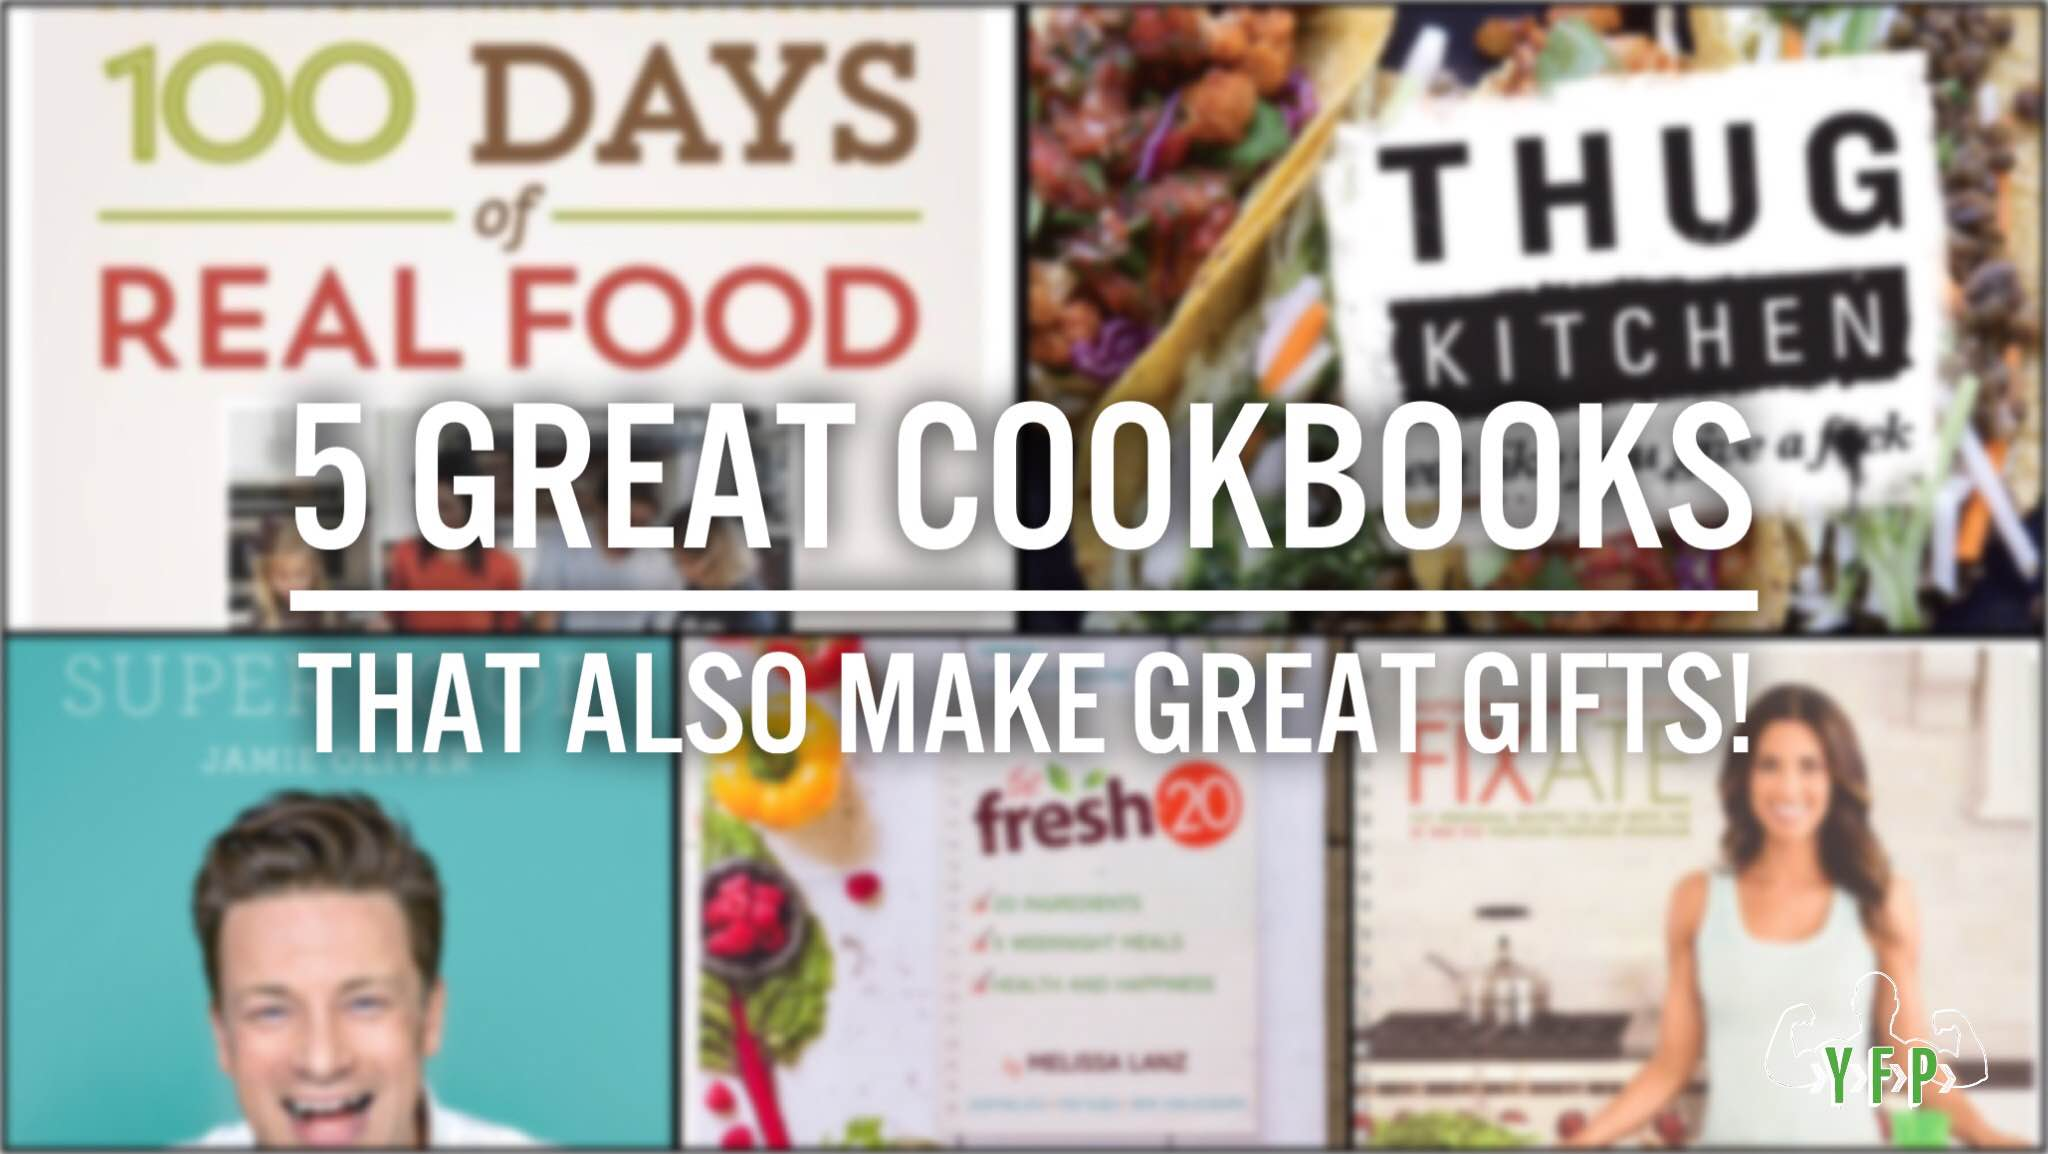 5 Great Cookbooks That Also Make Great Gifts